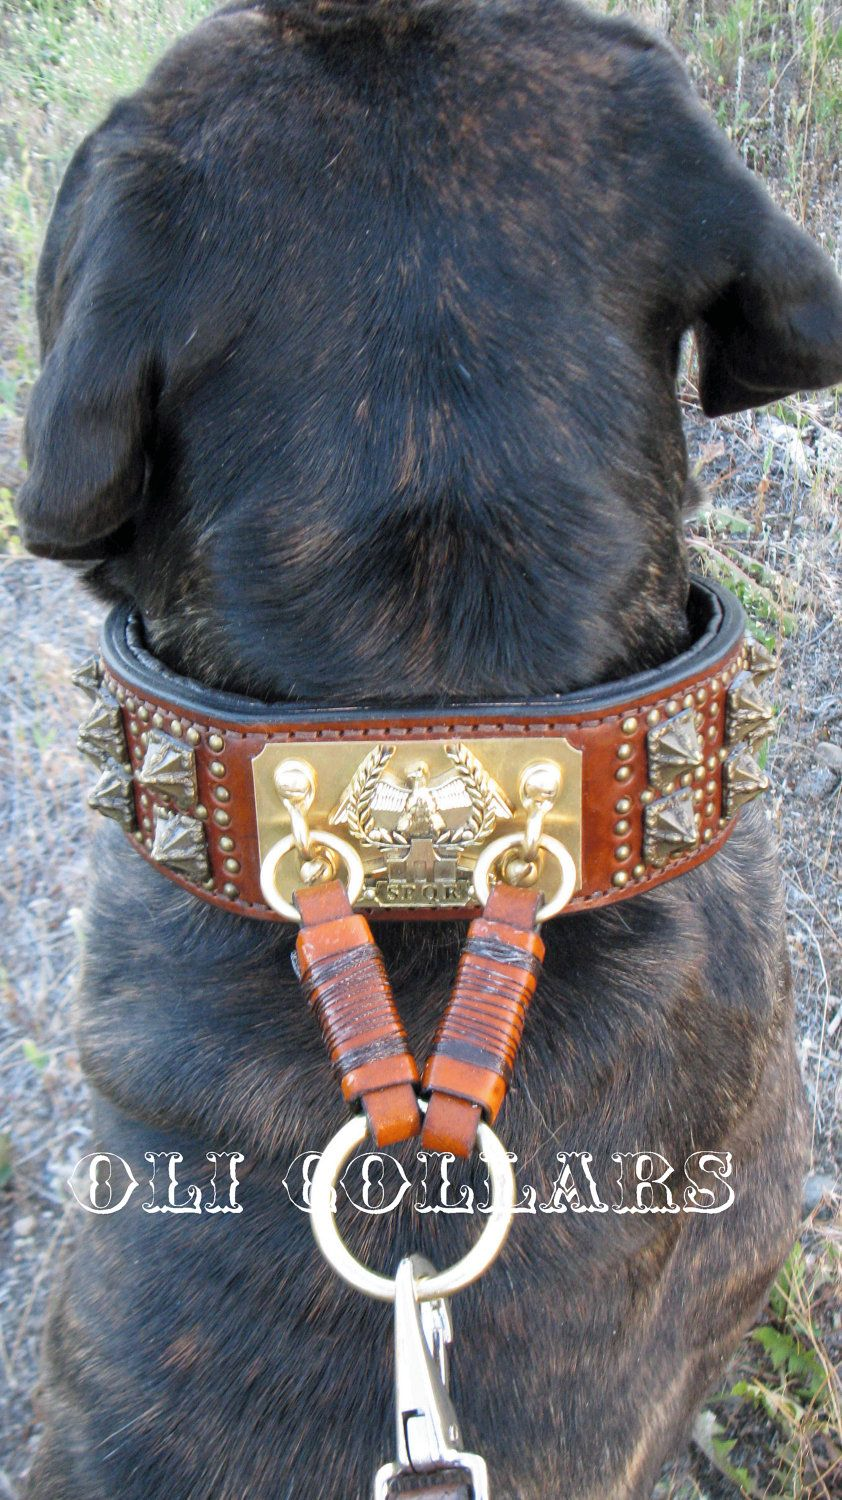 Anticuus Collar Crafted From Vintage Dog Collars Vintage Dog